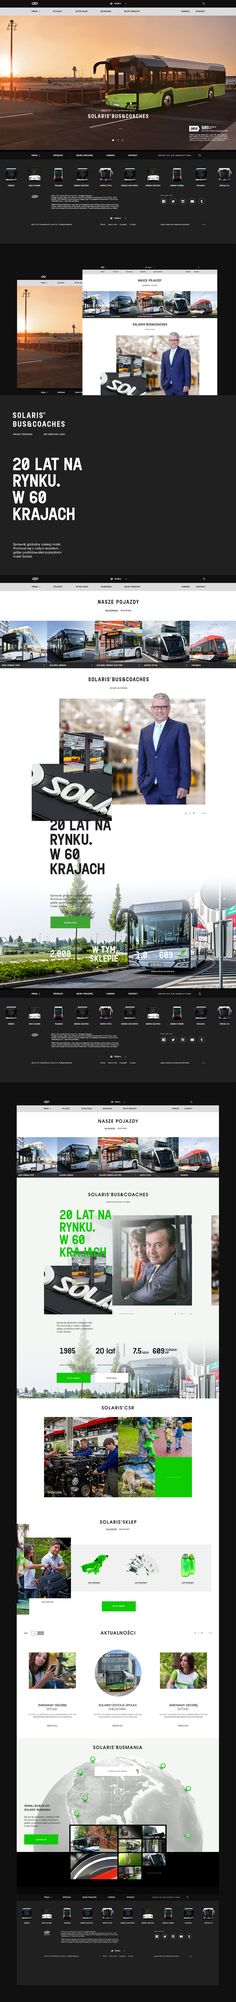 SOLARIS BUS&COACHES. Project proposal for Solaris. Done for Crafton.pl